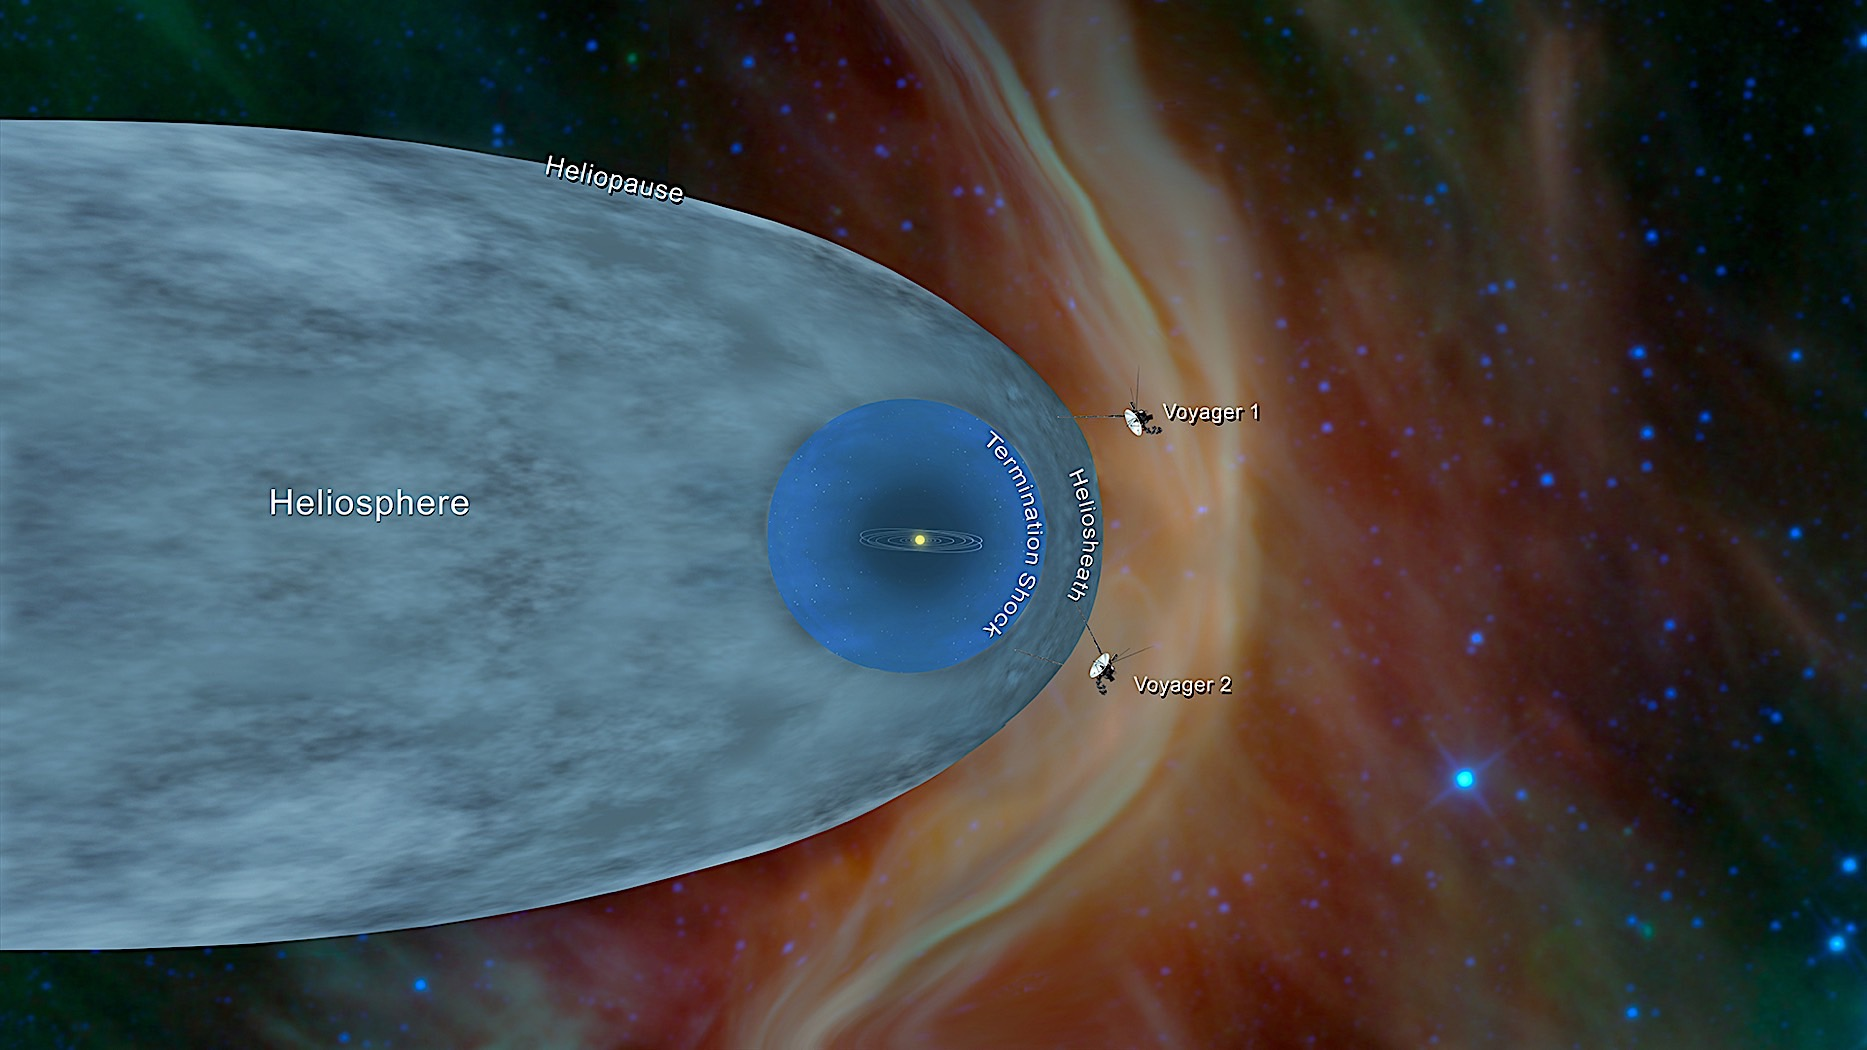 NASA's Voyager 2 spacecraft is now flying through the stars